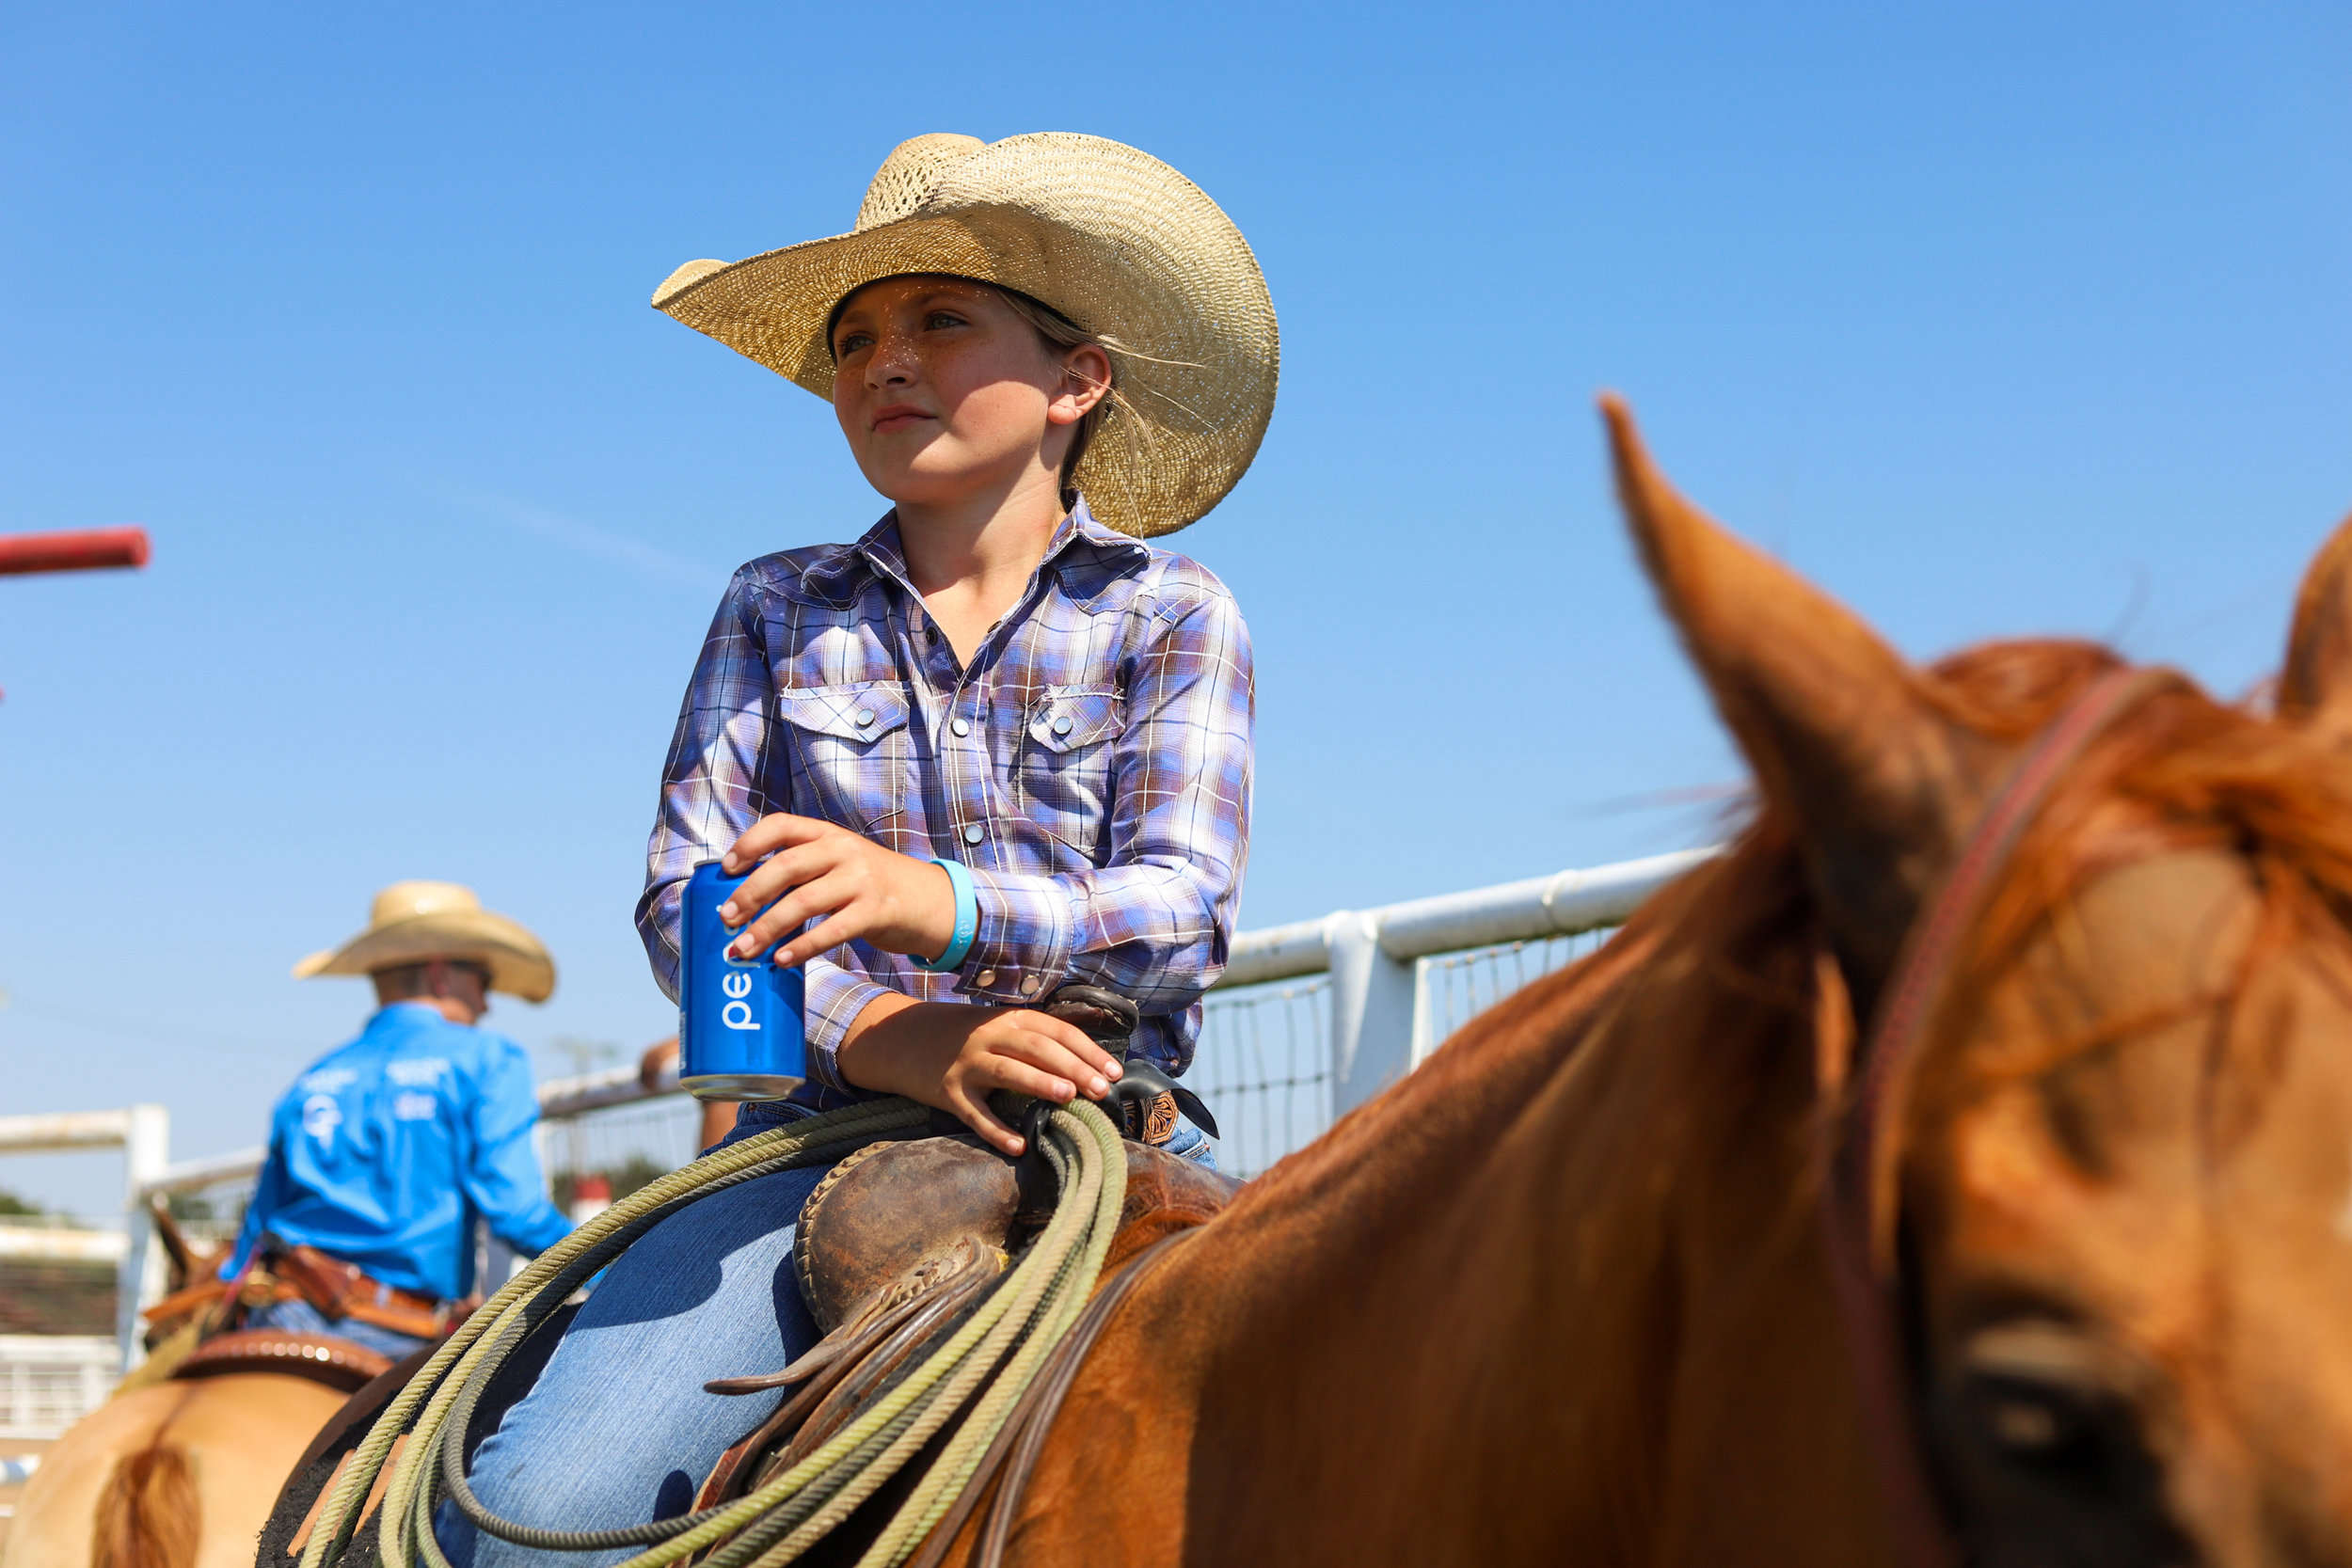 10-year-old Rowdy Stierwalt waits for her first event during the youth ranch rodeo at the 101 Arena in Ponca City, Oklahoma.